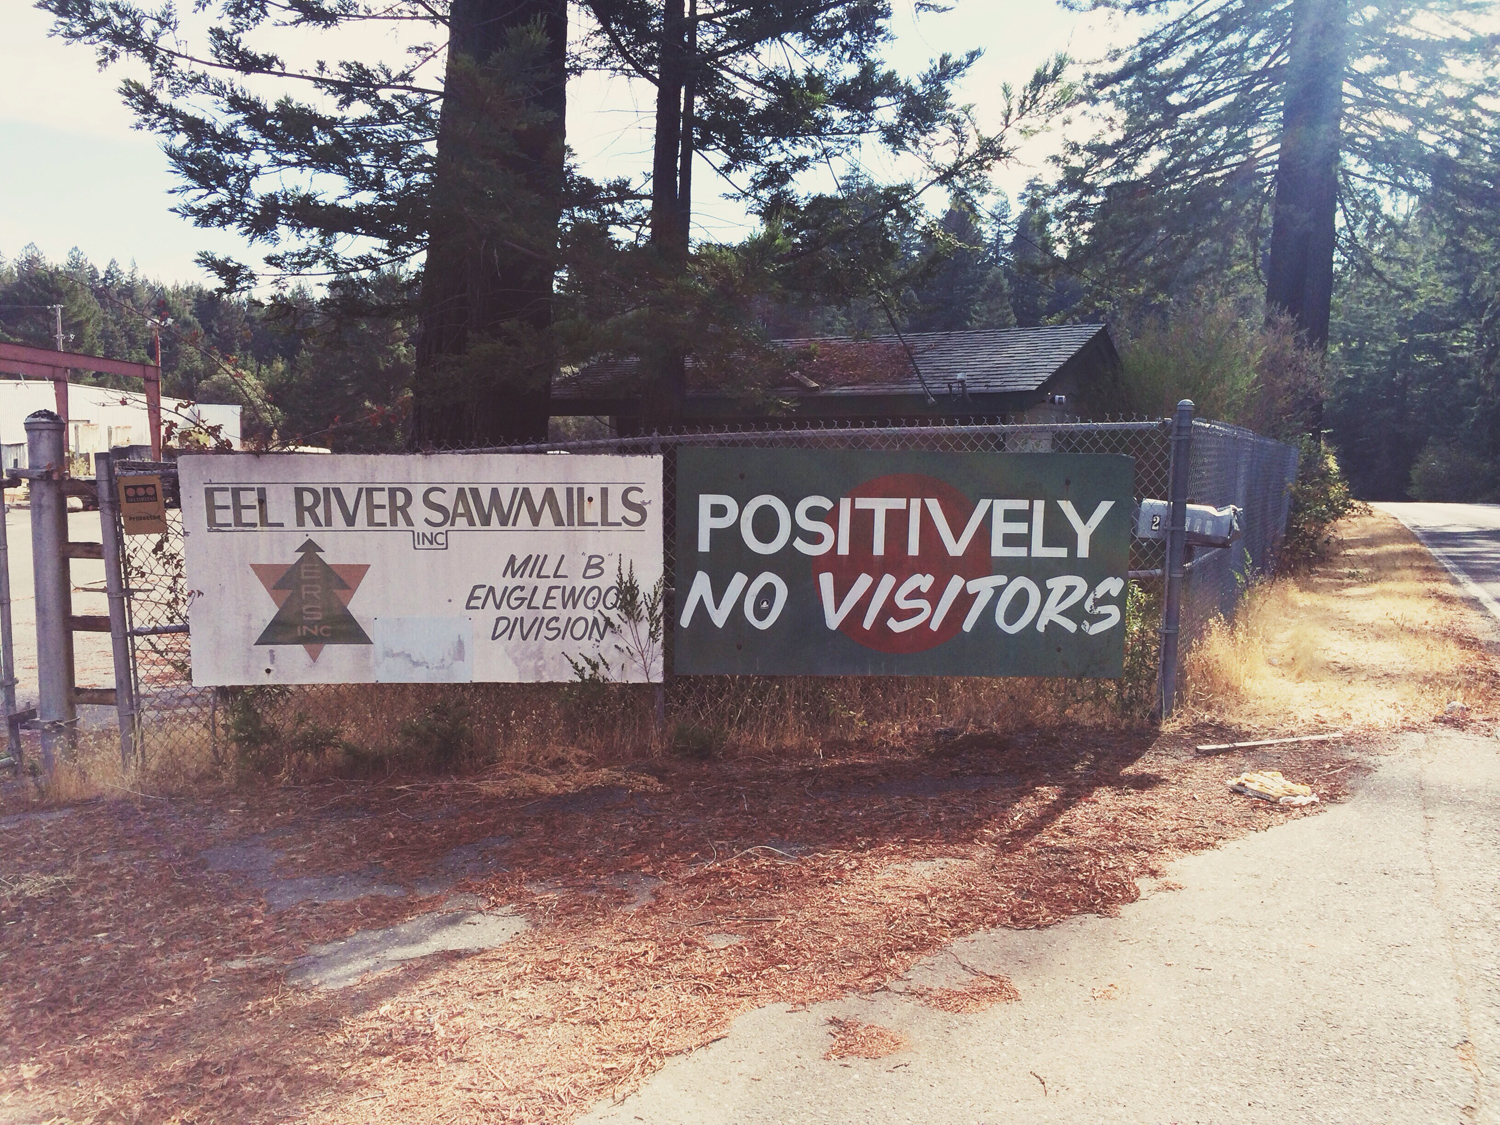 So, what you're saying is that I am absolutely not welcome in your sawmill?